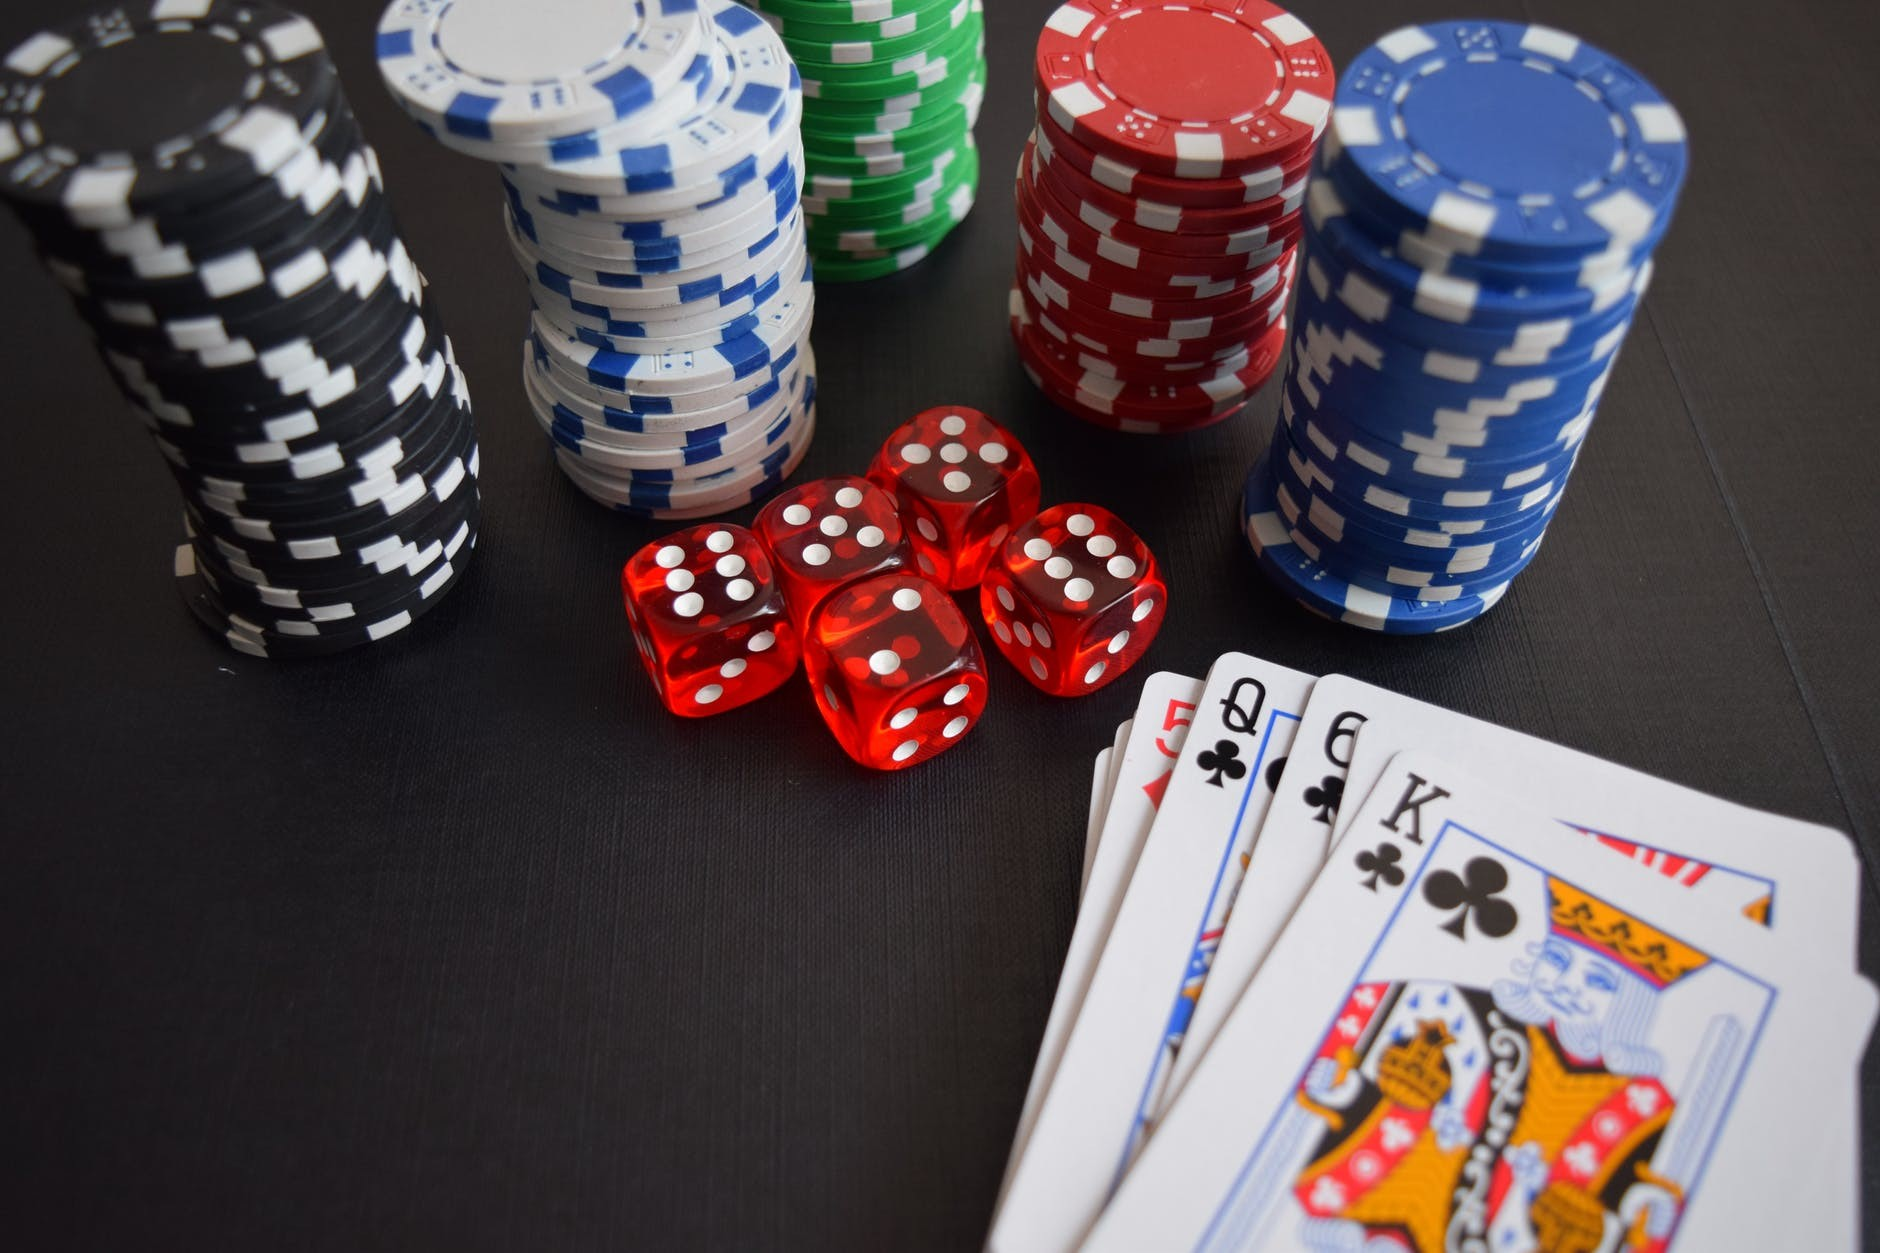 Casino chat rooms casinos playtech